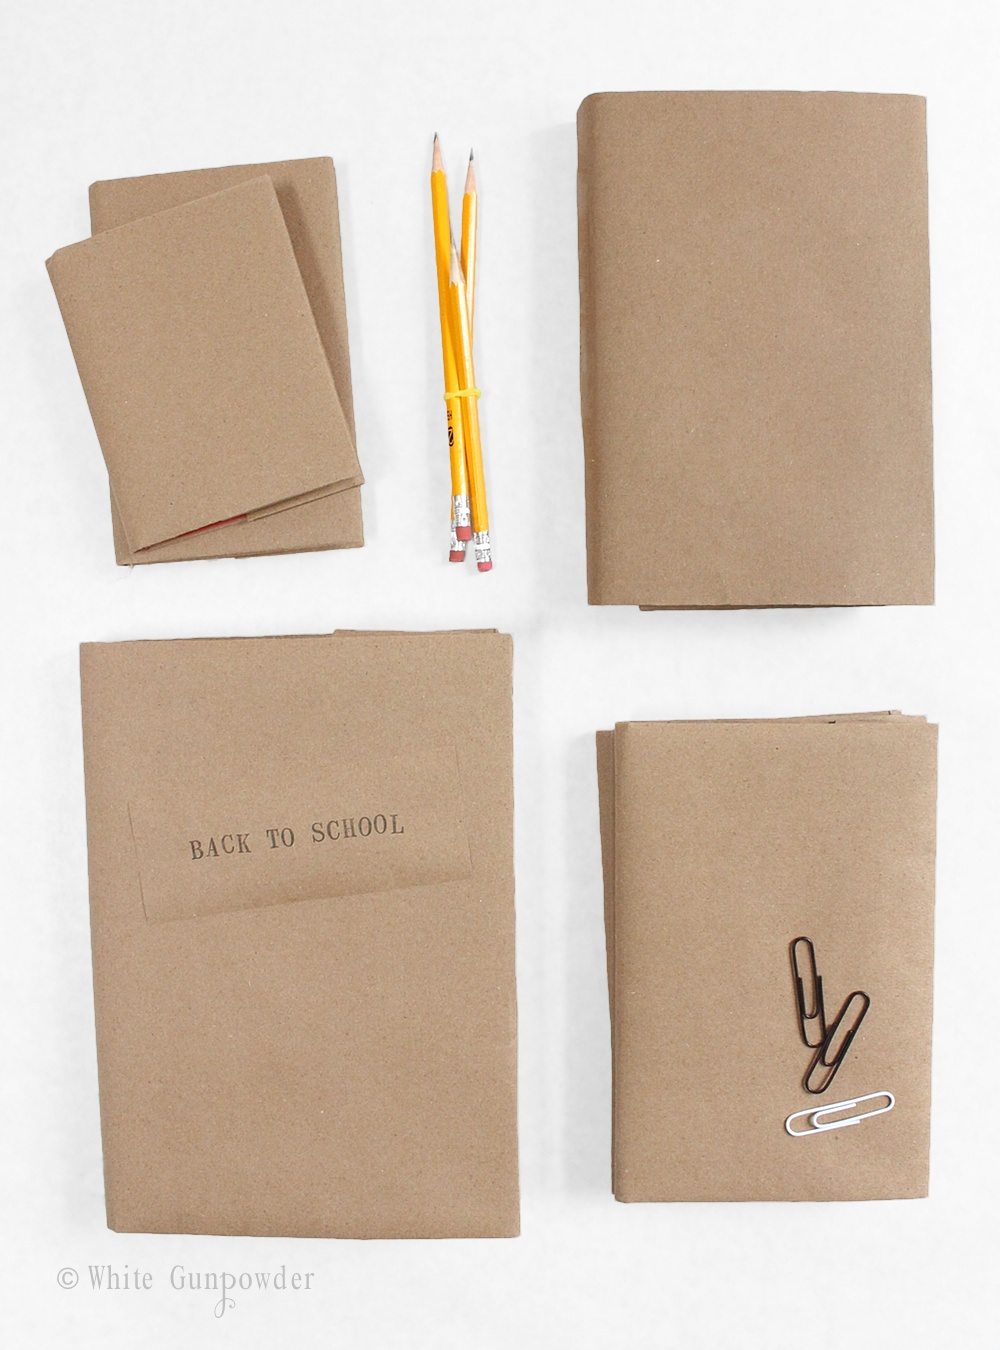 Brown Paper Book Cover : Back to school diy brown paper book covers white gunpowder